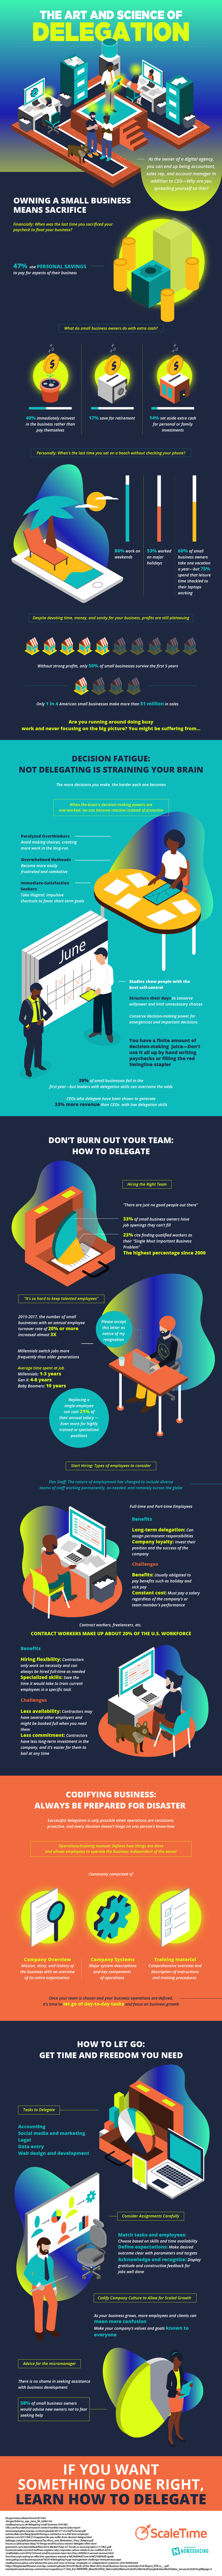 Delegation For The Good Of Your Business [Infographic] 1